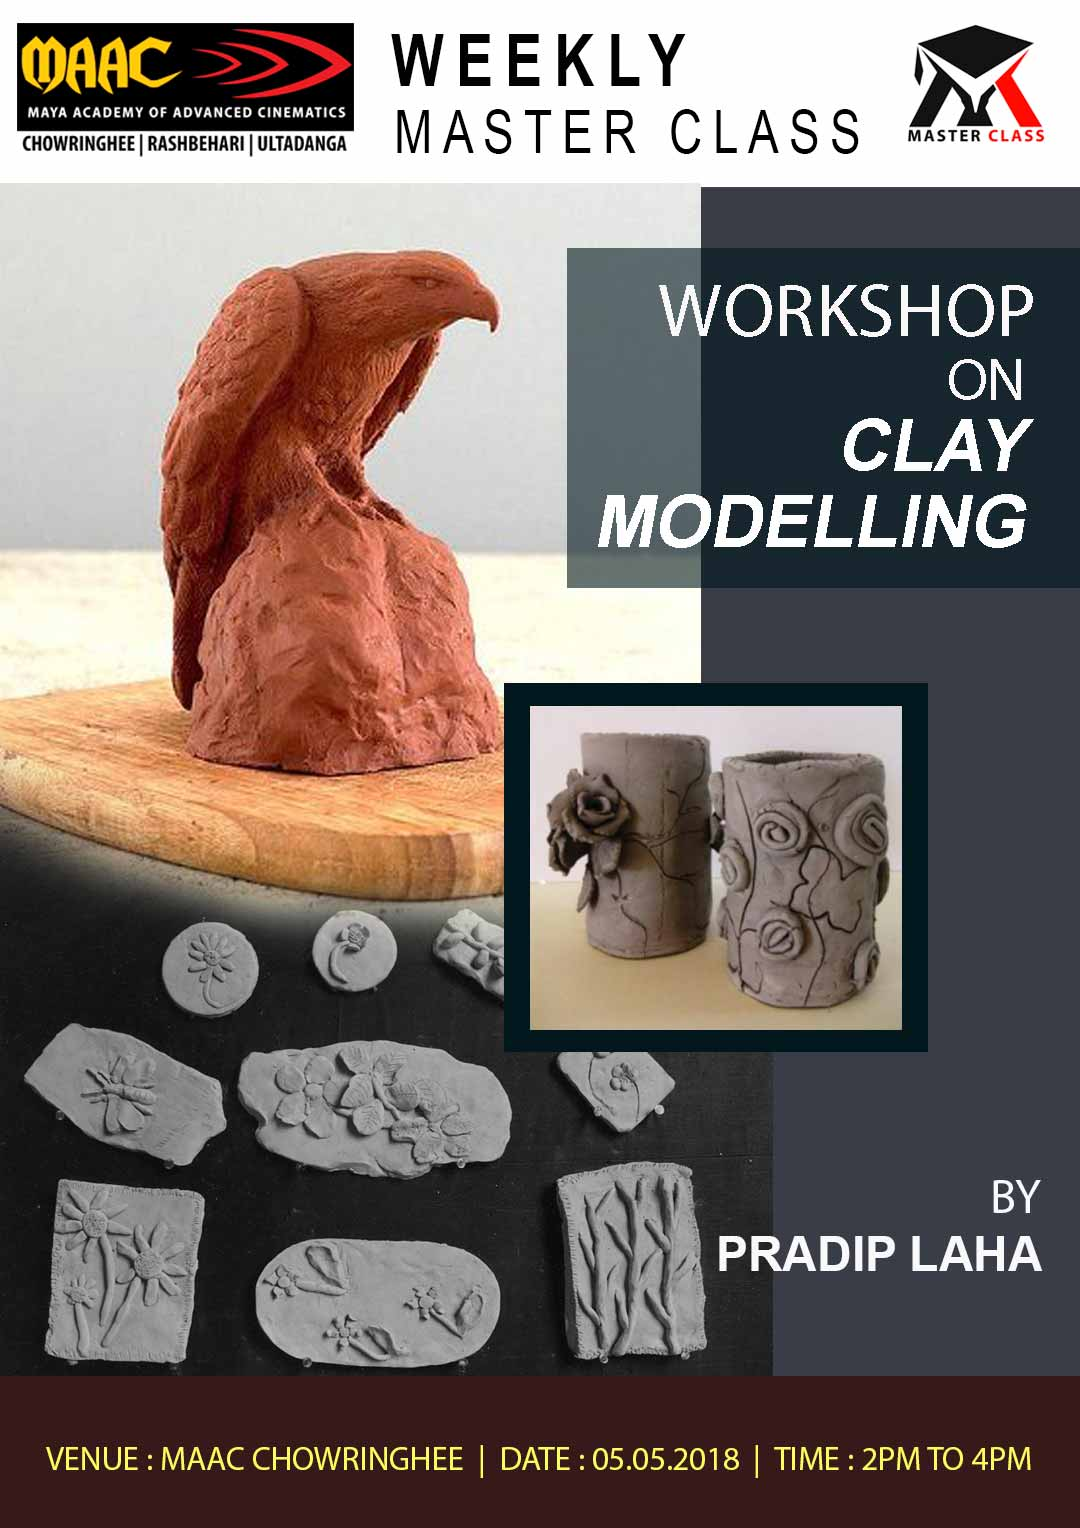 Weekly Master Class on Clay Modelling